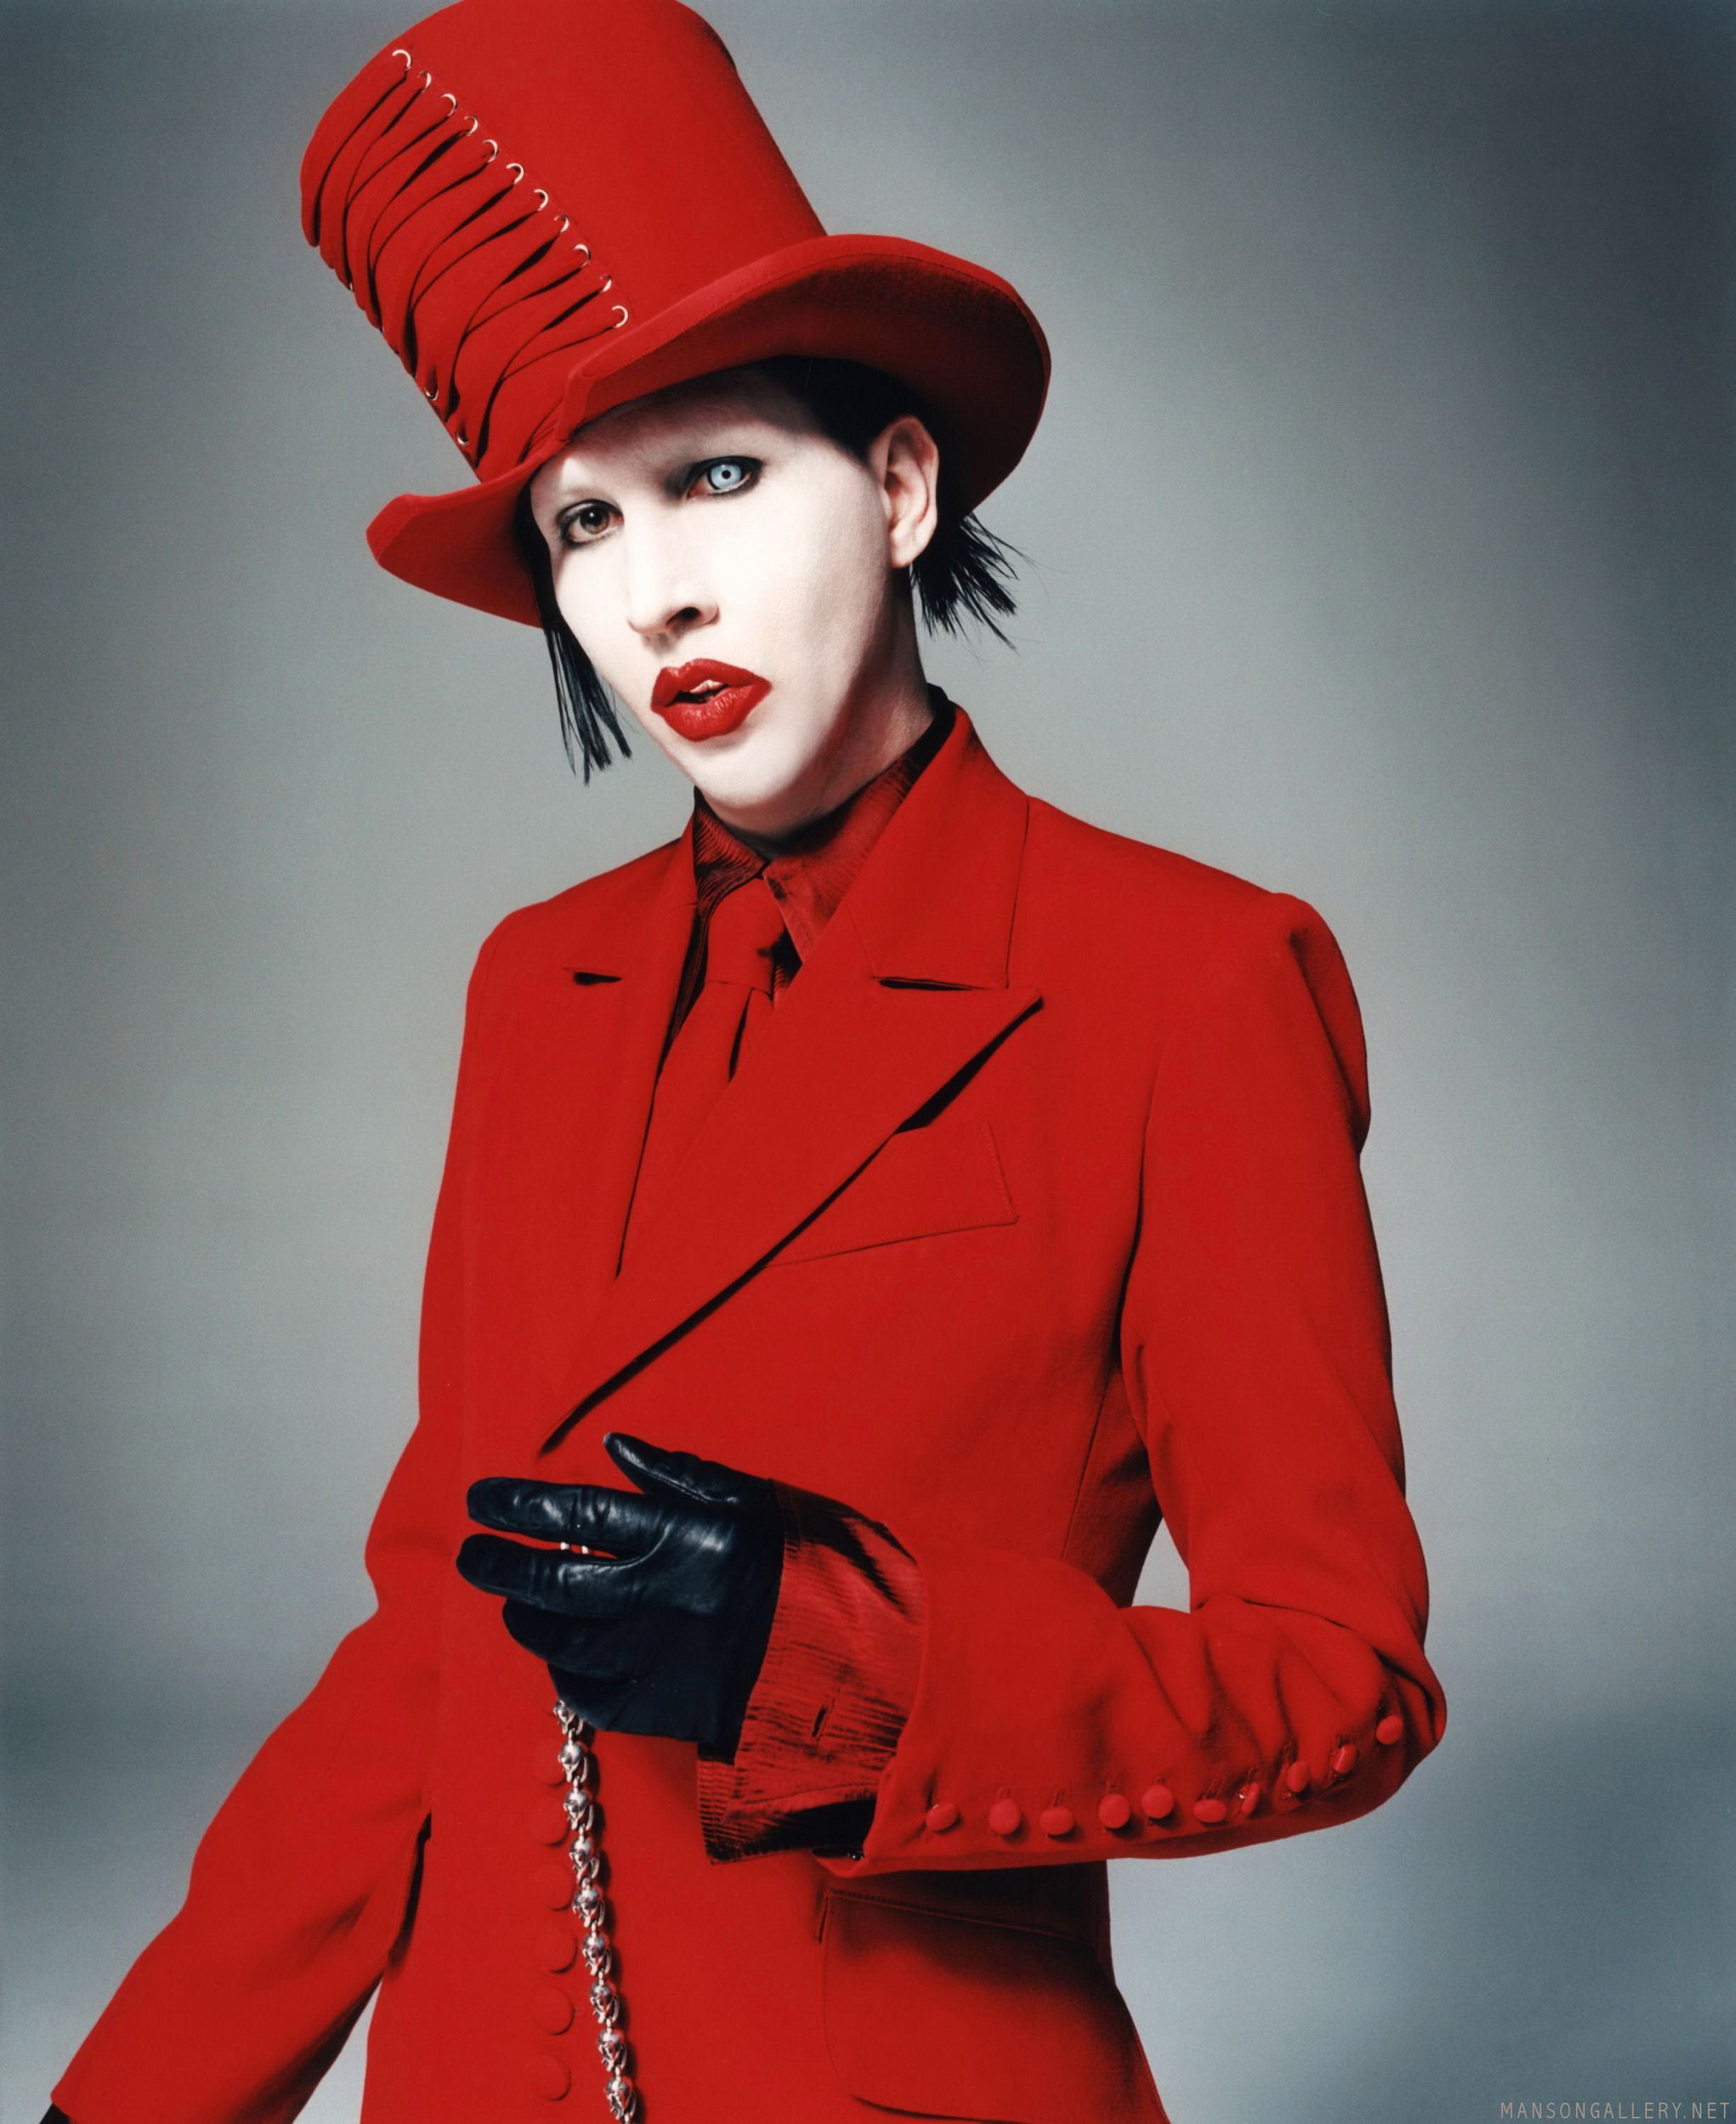 marilyn manson photo 40 of 53 pics wallpaper photo 244688 theplace2. Black Bedroom Furniture Sets. Home Design Ideas